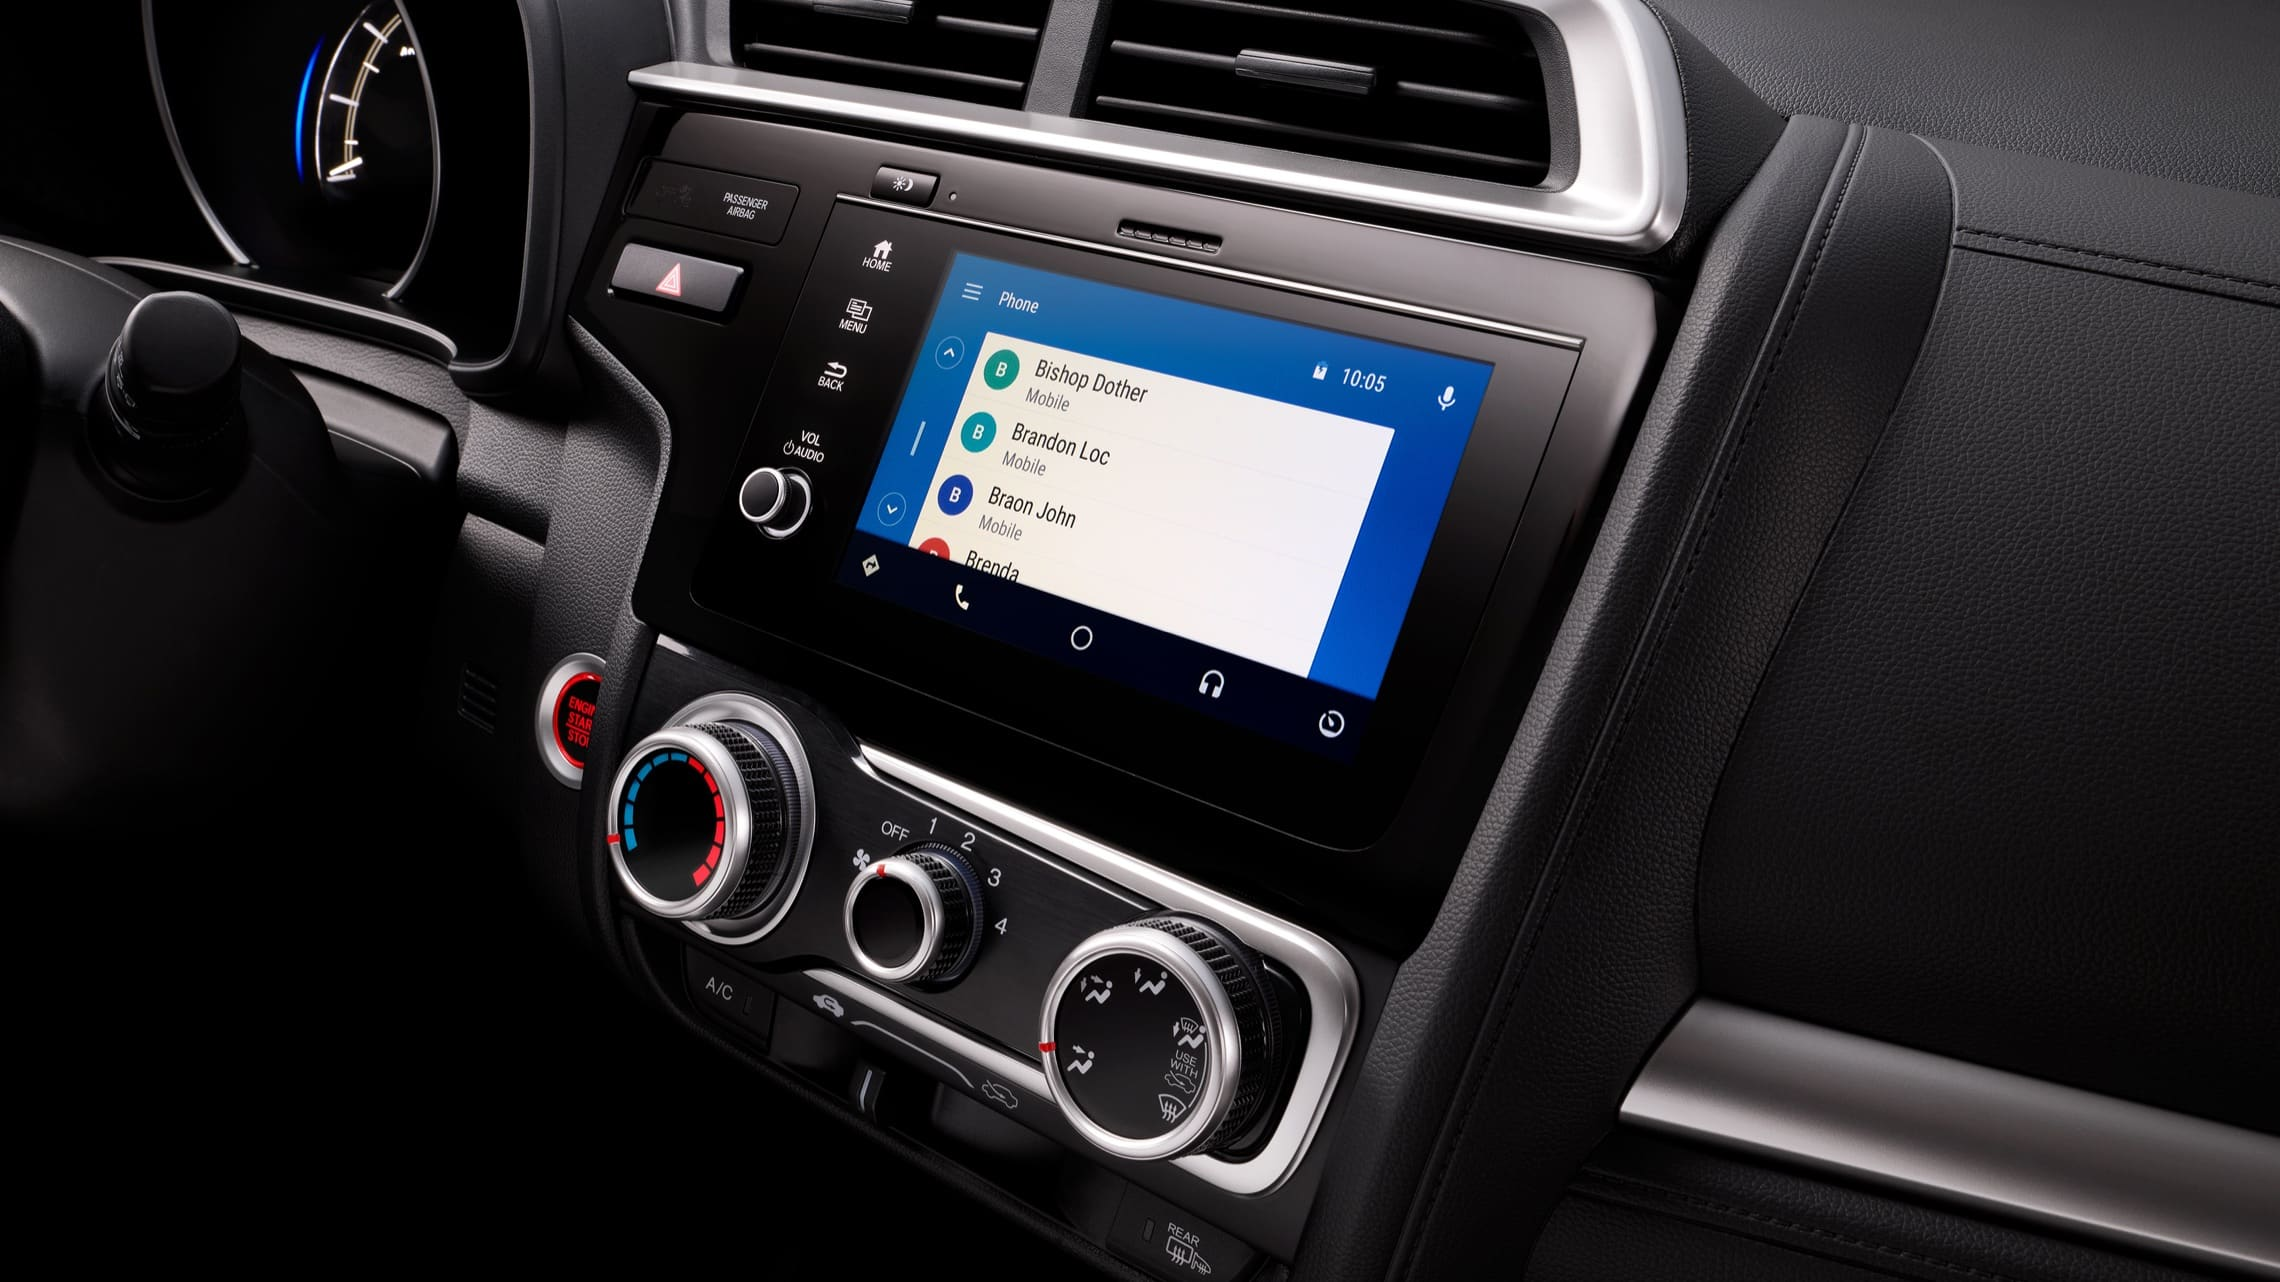 Display Audio touch-screen with Android Auto™ detail on 2020 Honda Fit.